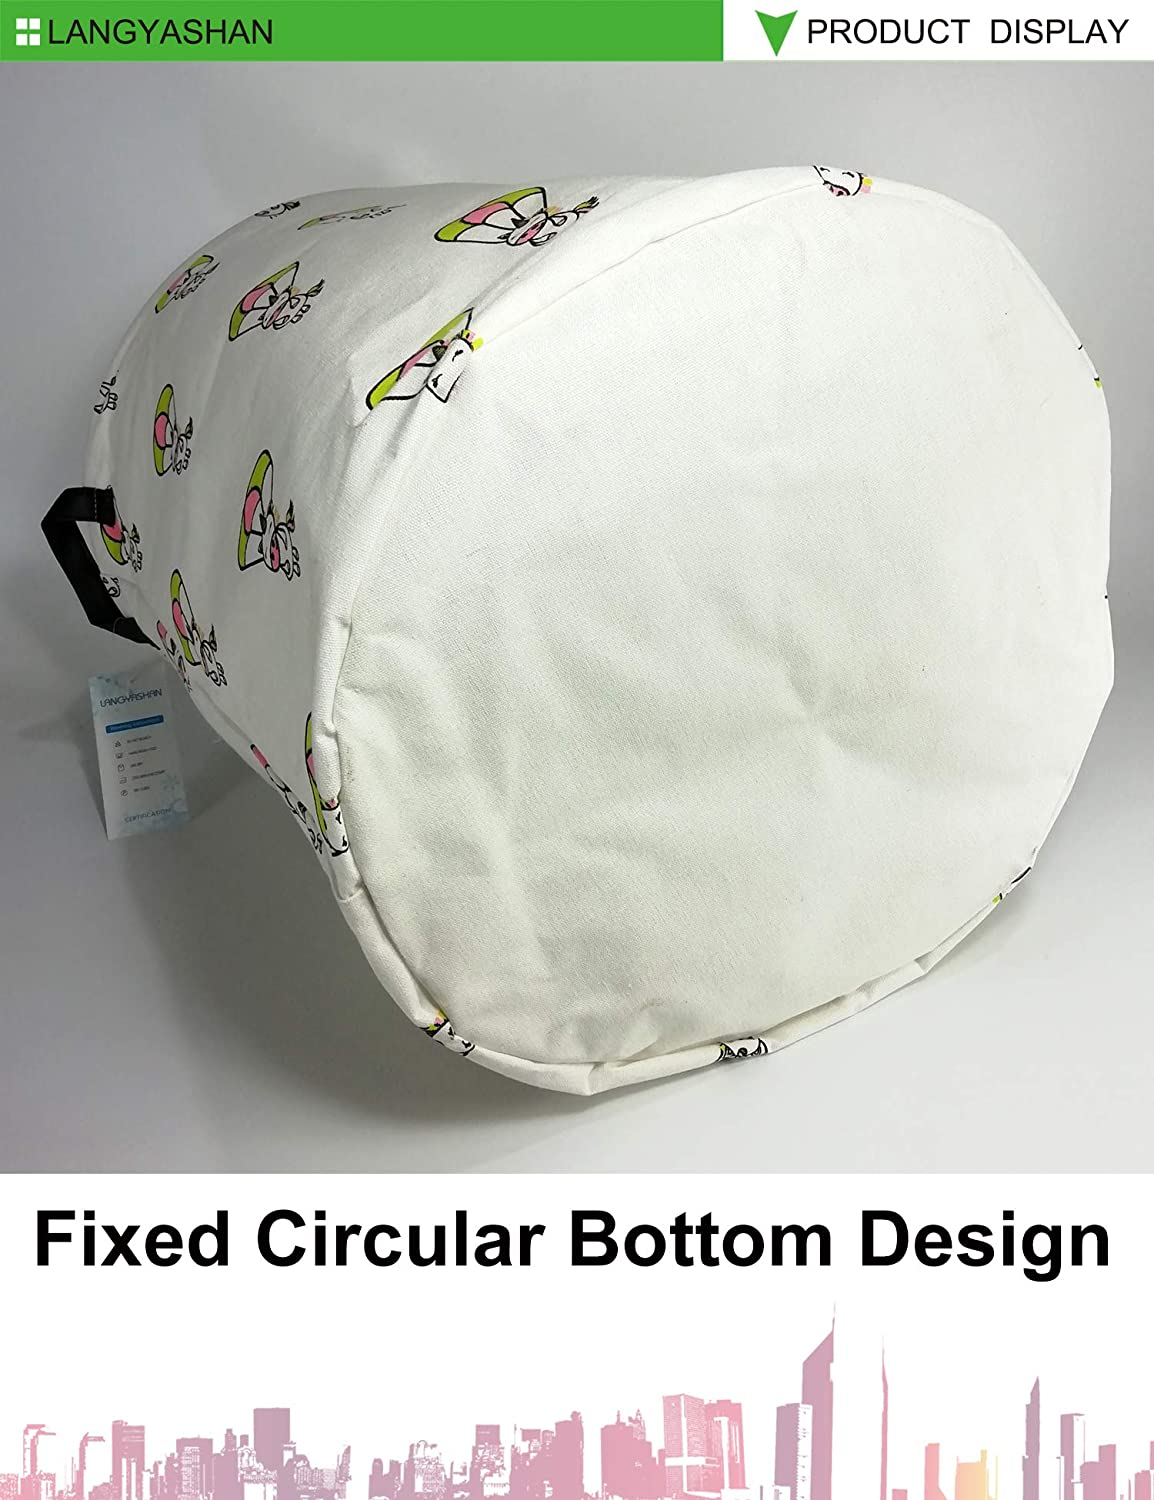 Bunny Bedroom Clothes,Baby Nursery LANGYASHAN Storage Bin,Canvas Fabric Collapsible Organizer Basket for Laundry Hamper,Toy Bins,Gift Baskets